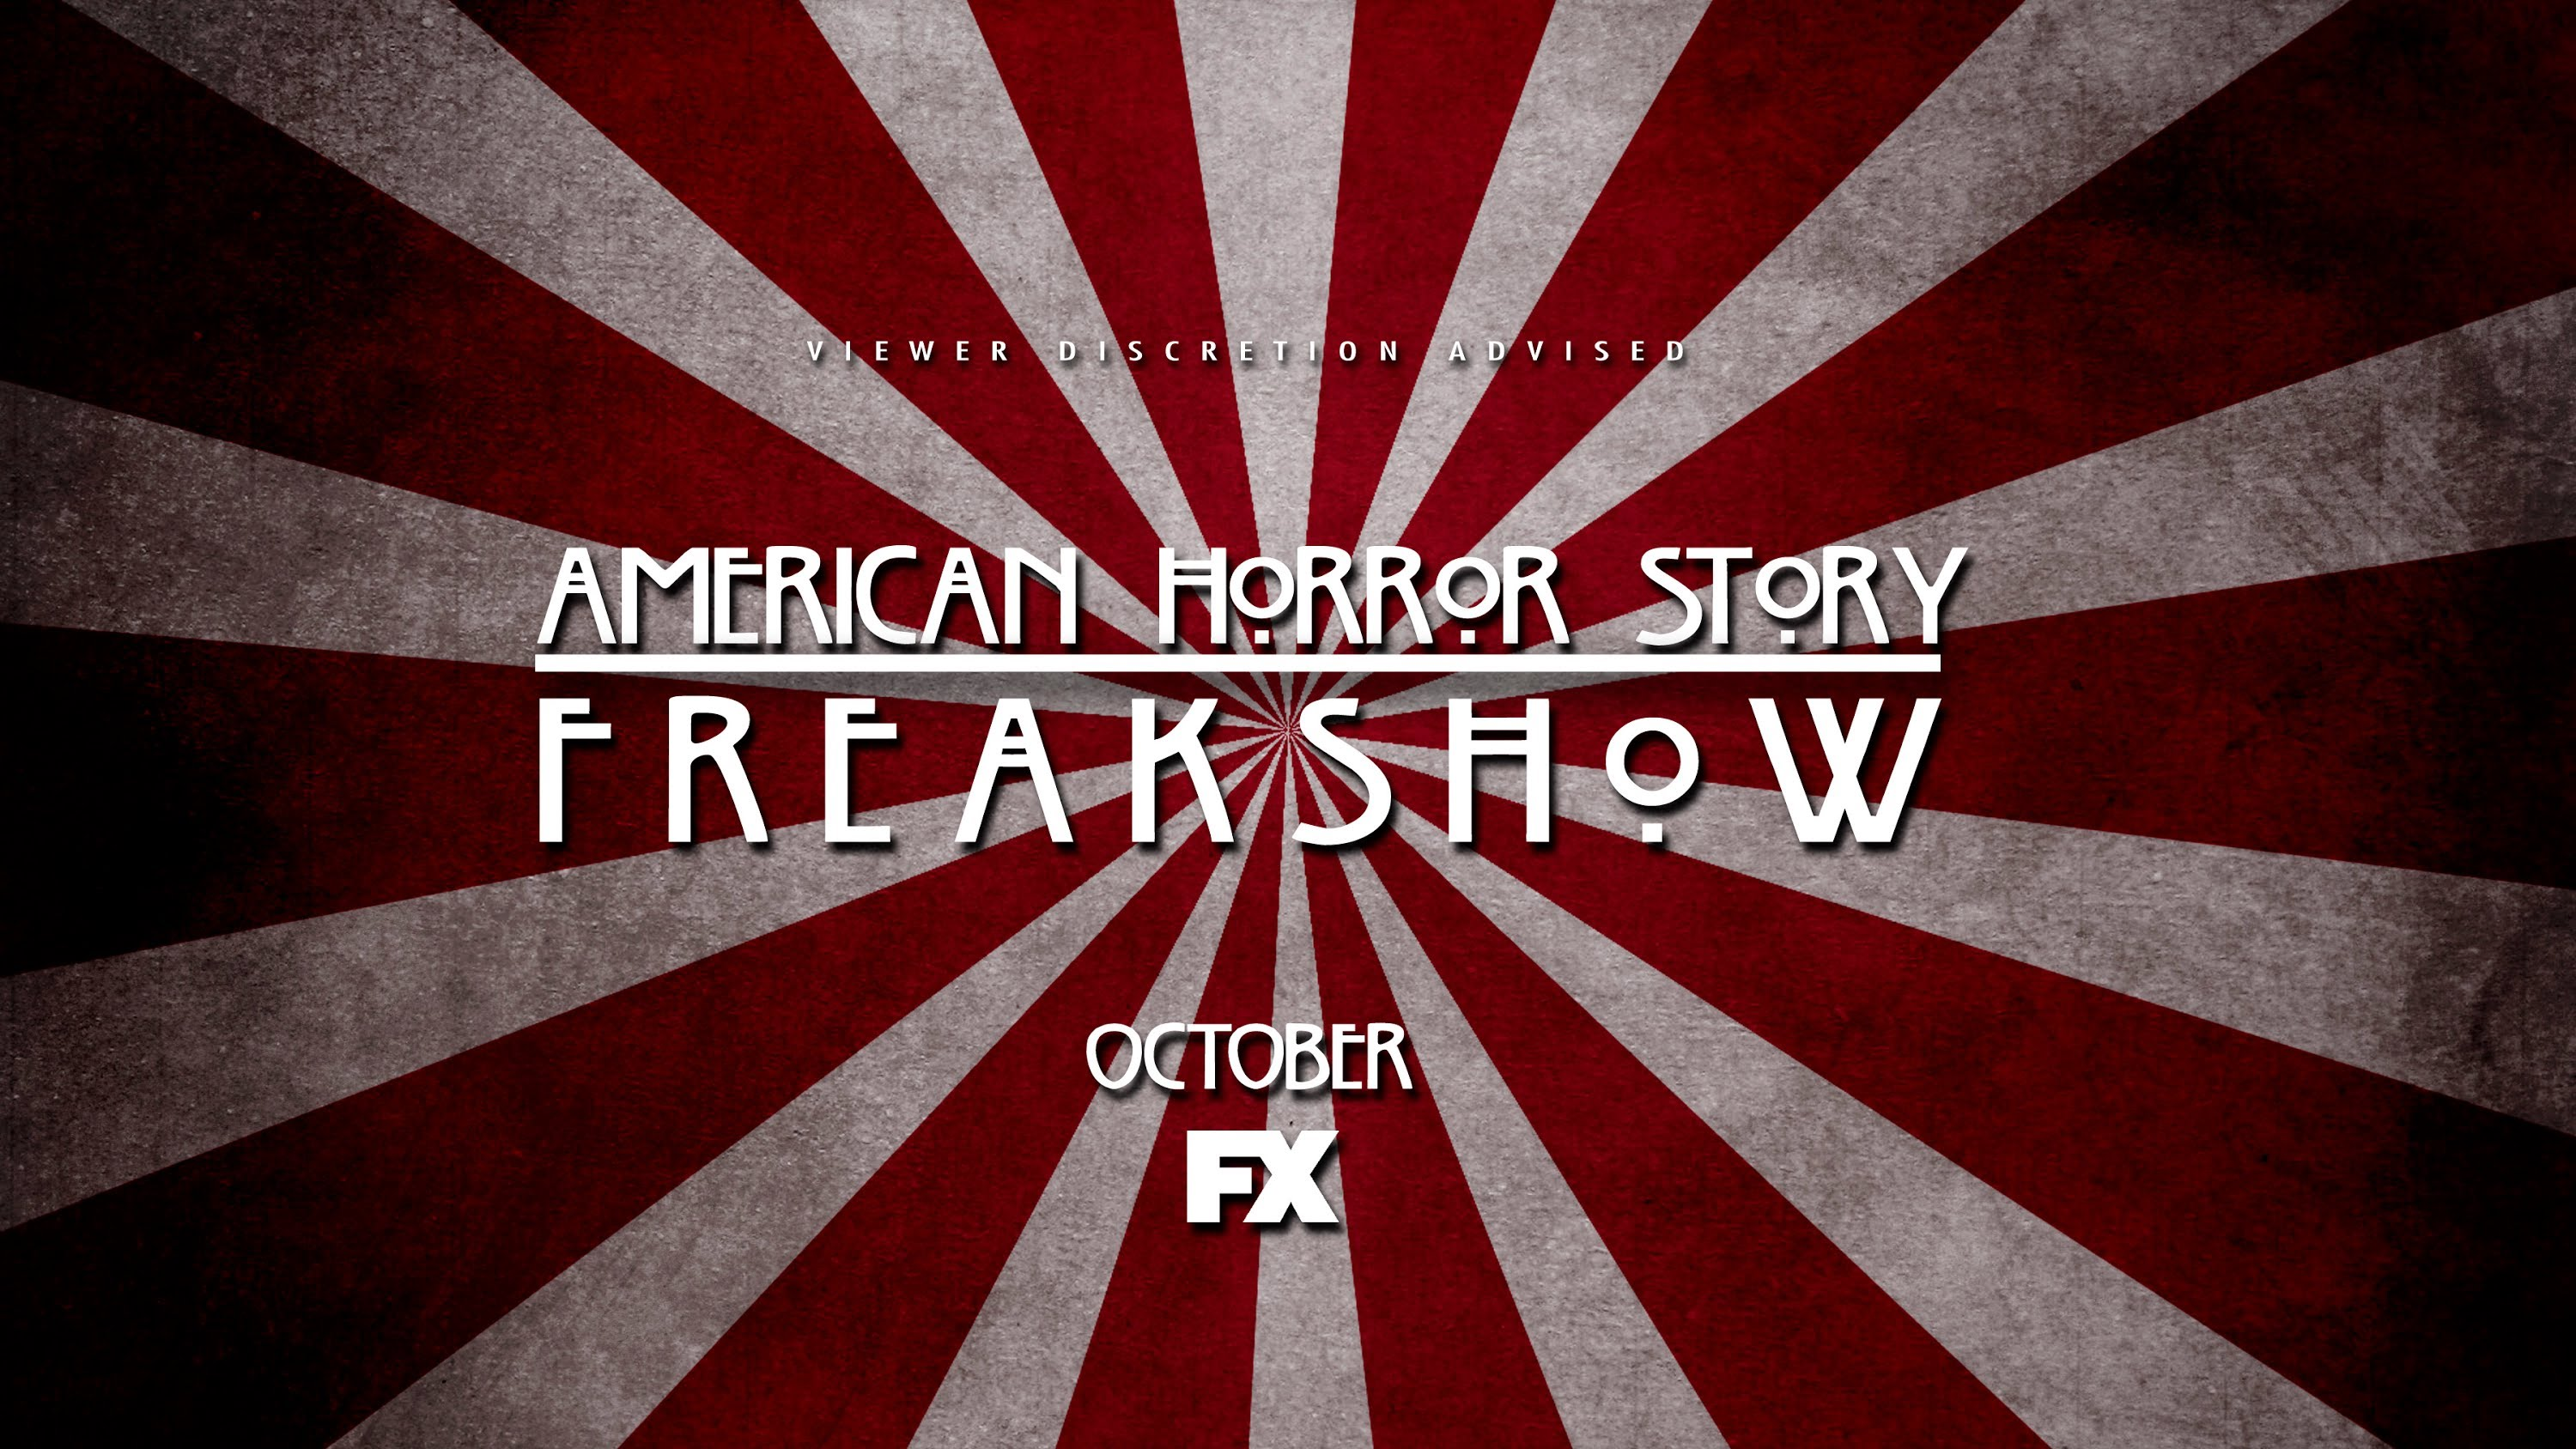 American Horror Story 4 Reveals Its New Title, Freak Show